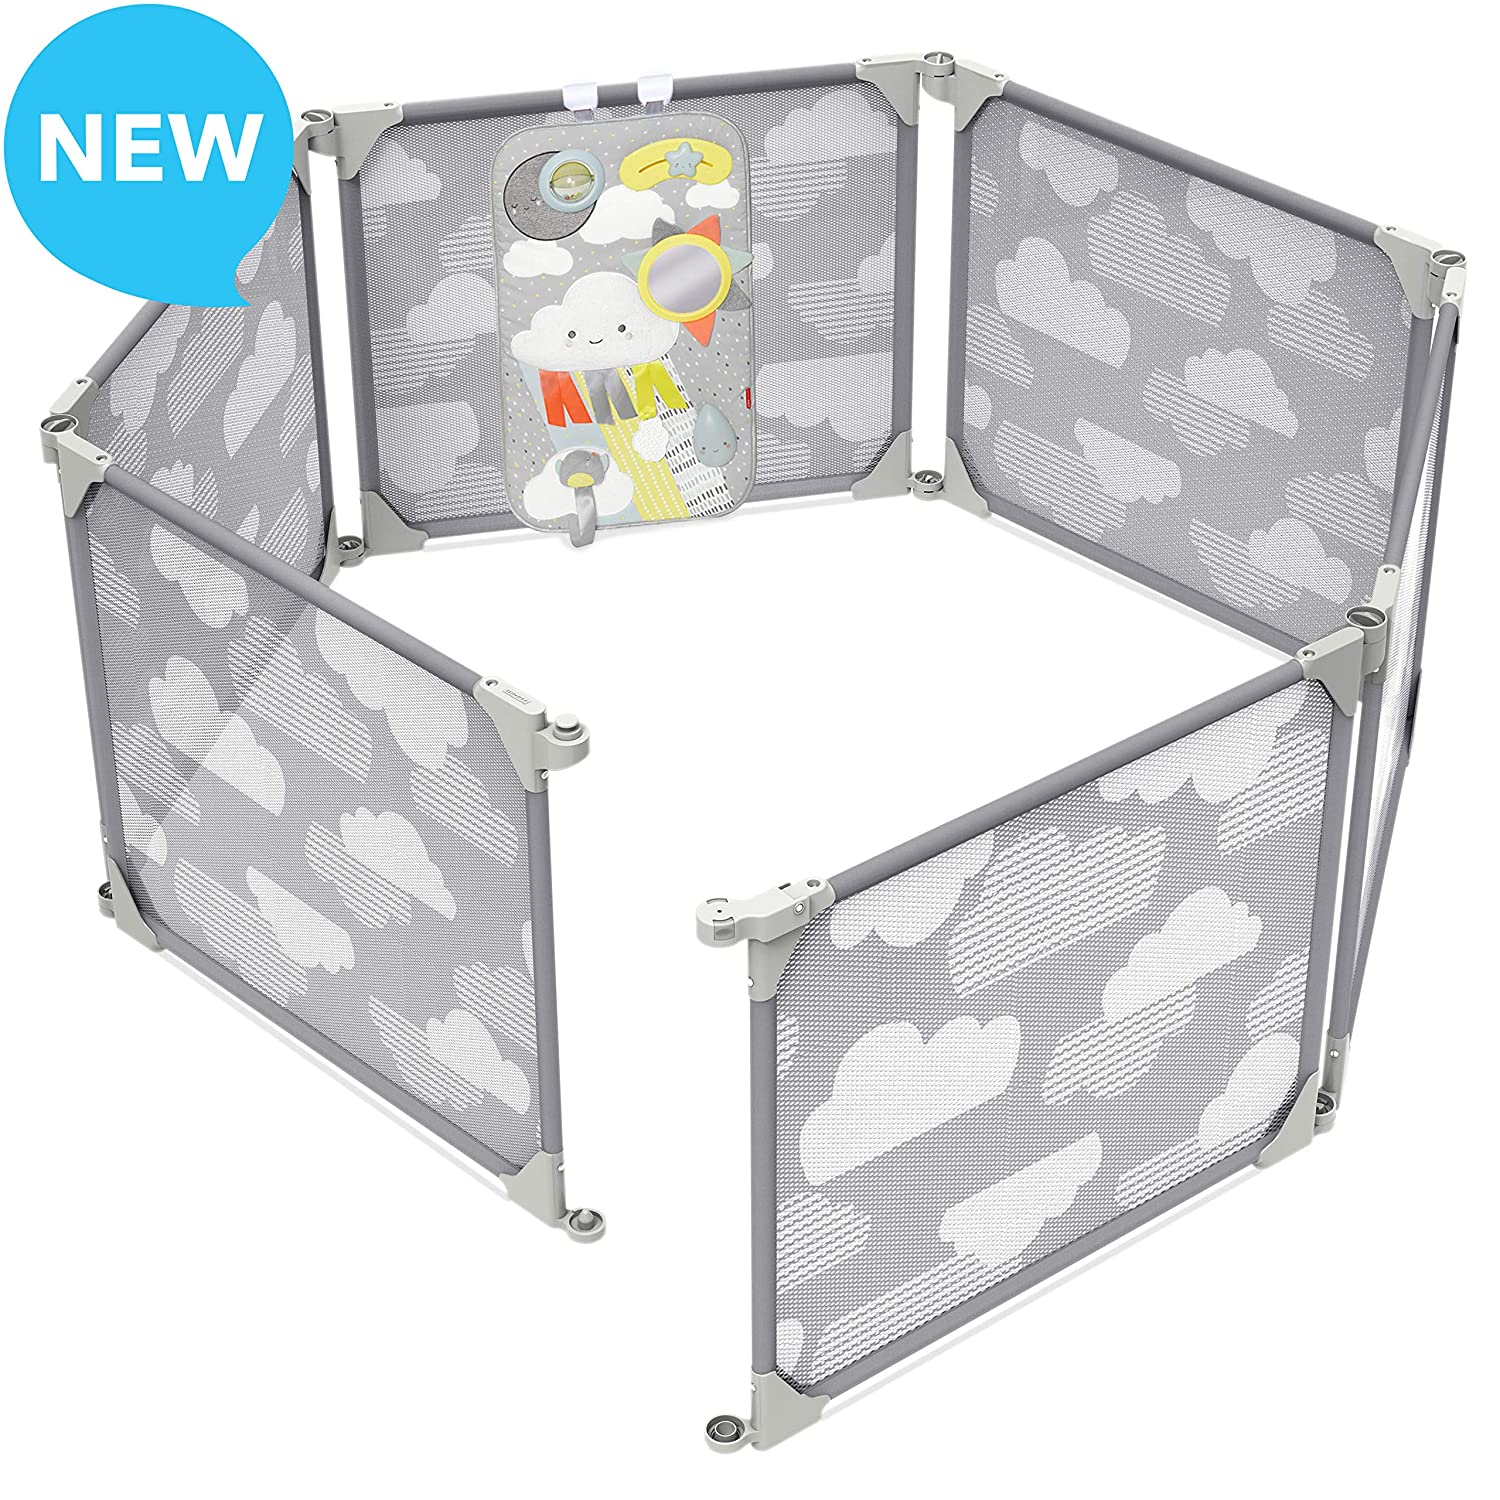 Skip Hop Baby Playpen Expandable or Wall Mounted Play Yard with Clip-On Play Surface, Silver Lining Cloud